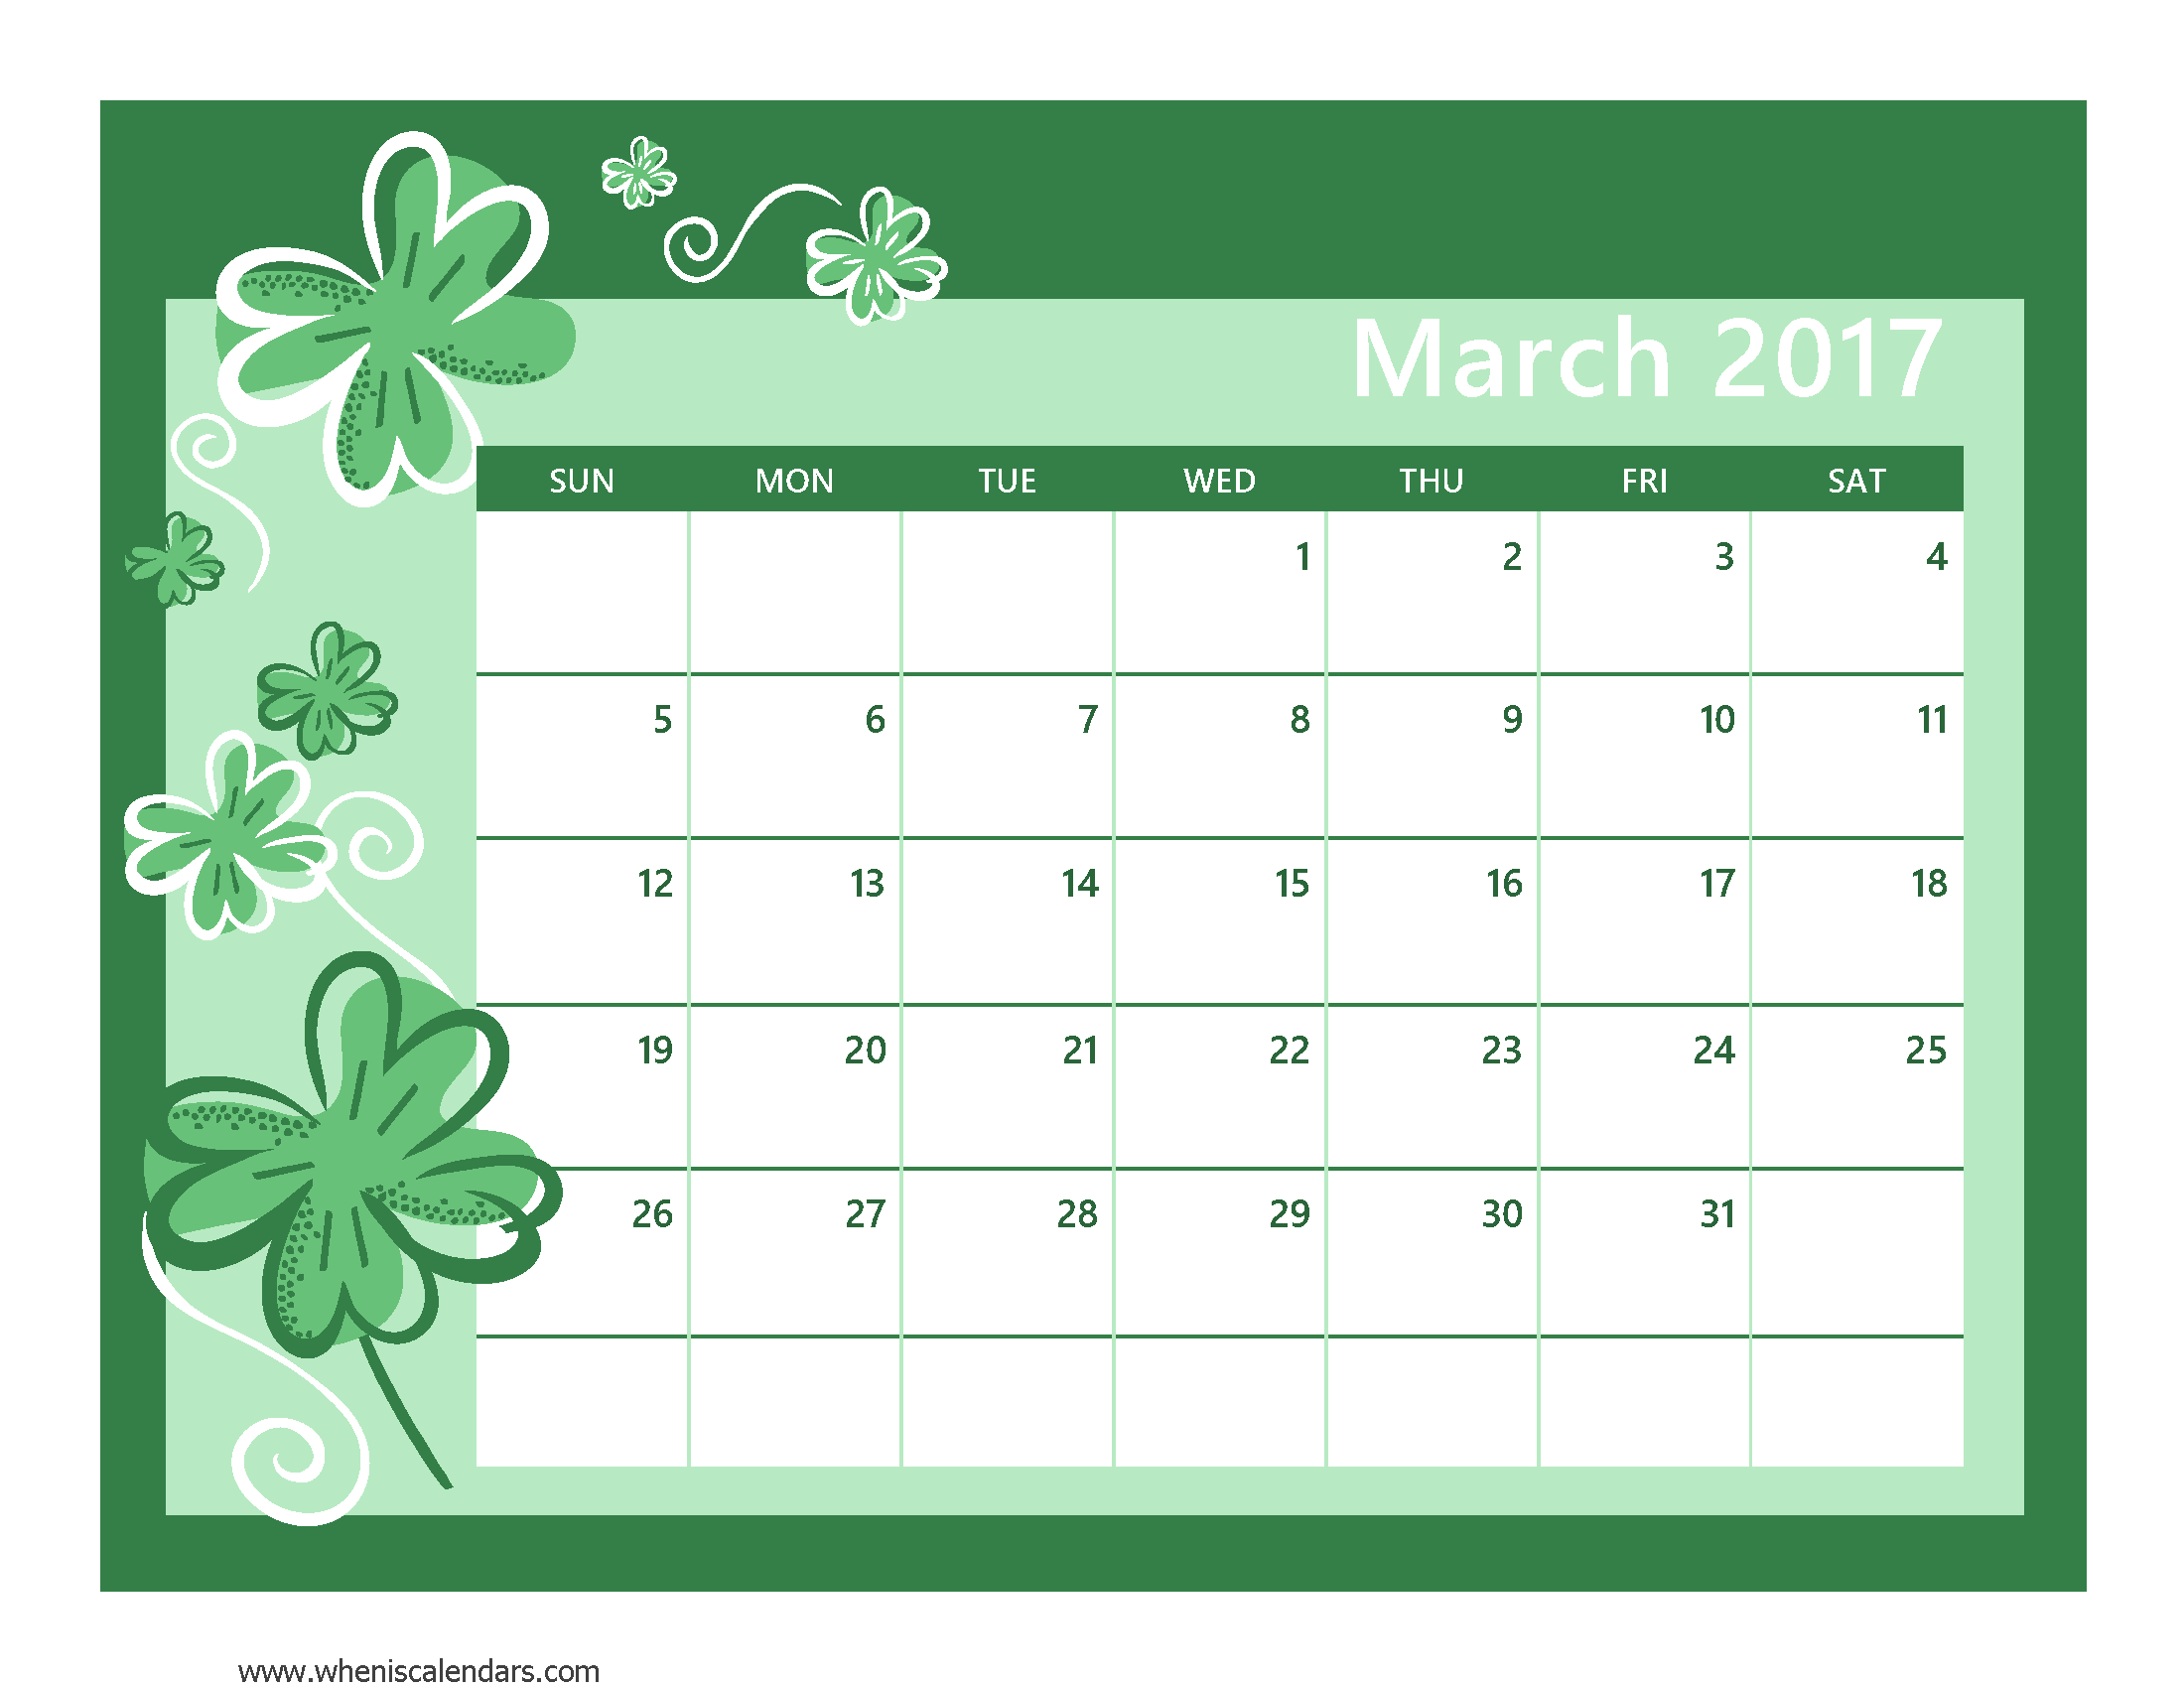 Printable February When Is Calendars